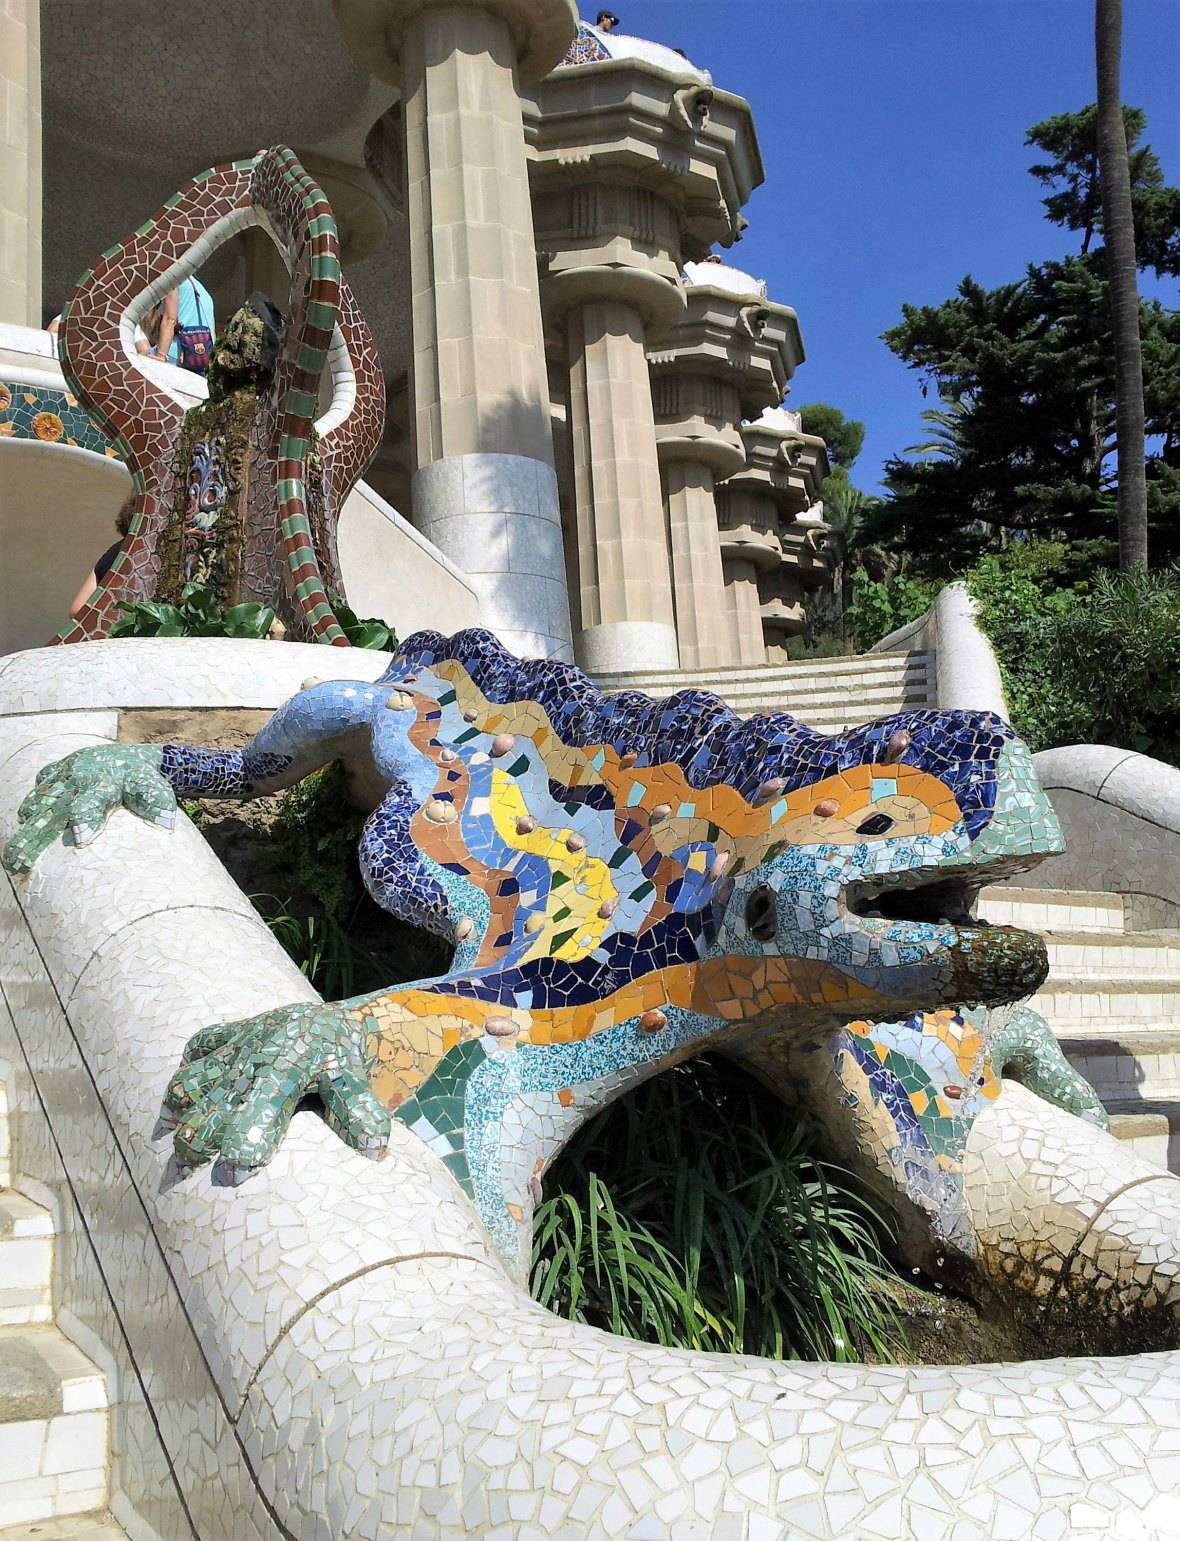 Photo 1: Parc Guell - Barcelone